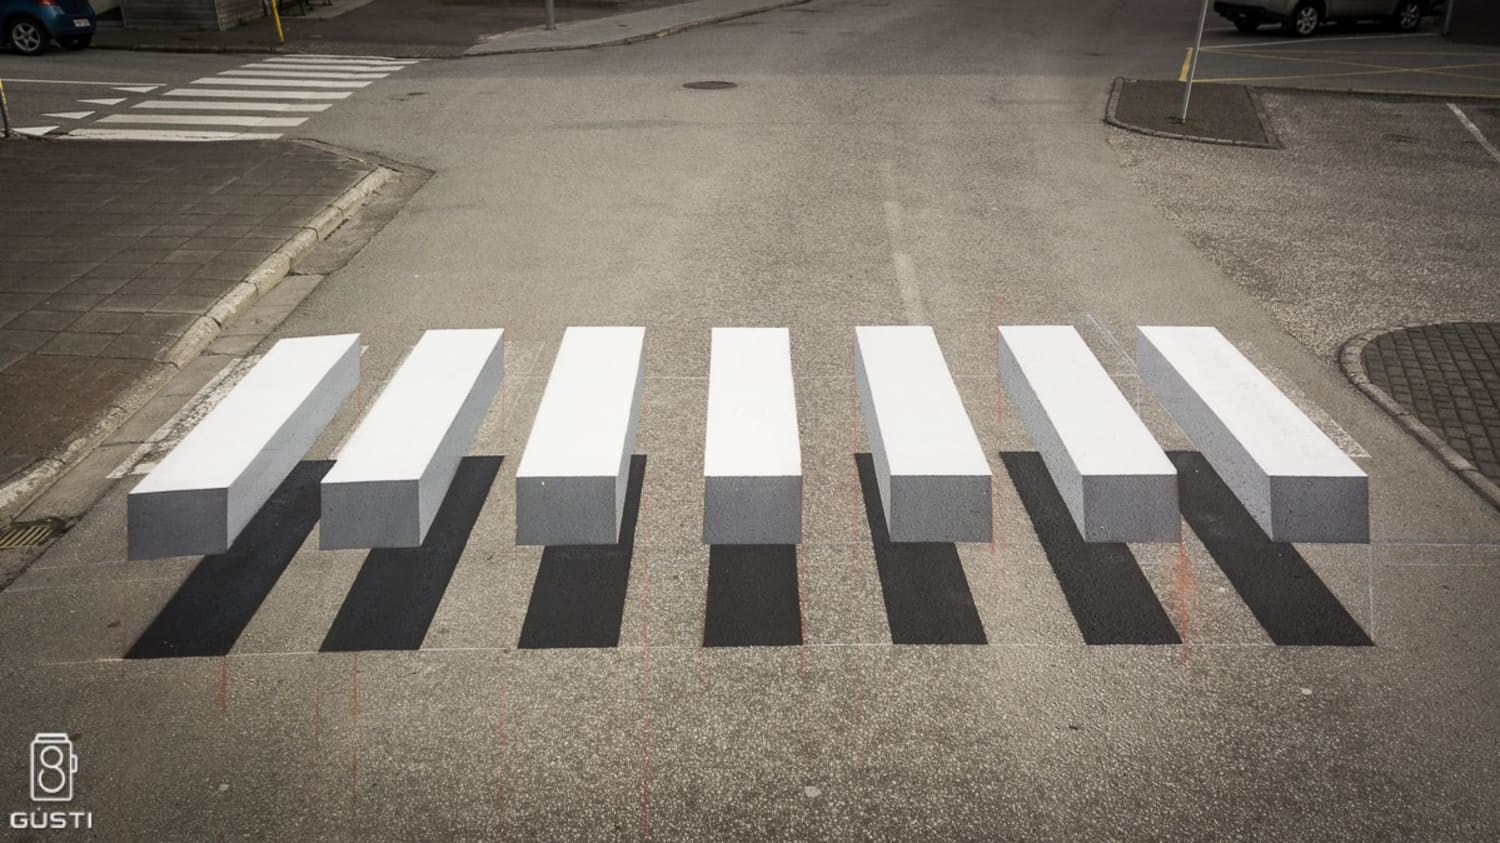 Could This Optical Illusion Save Lives?